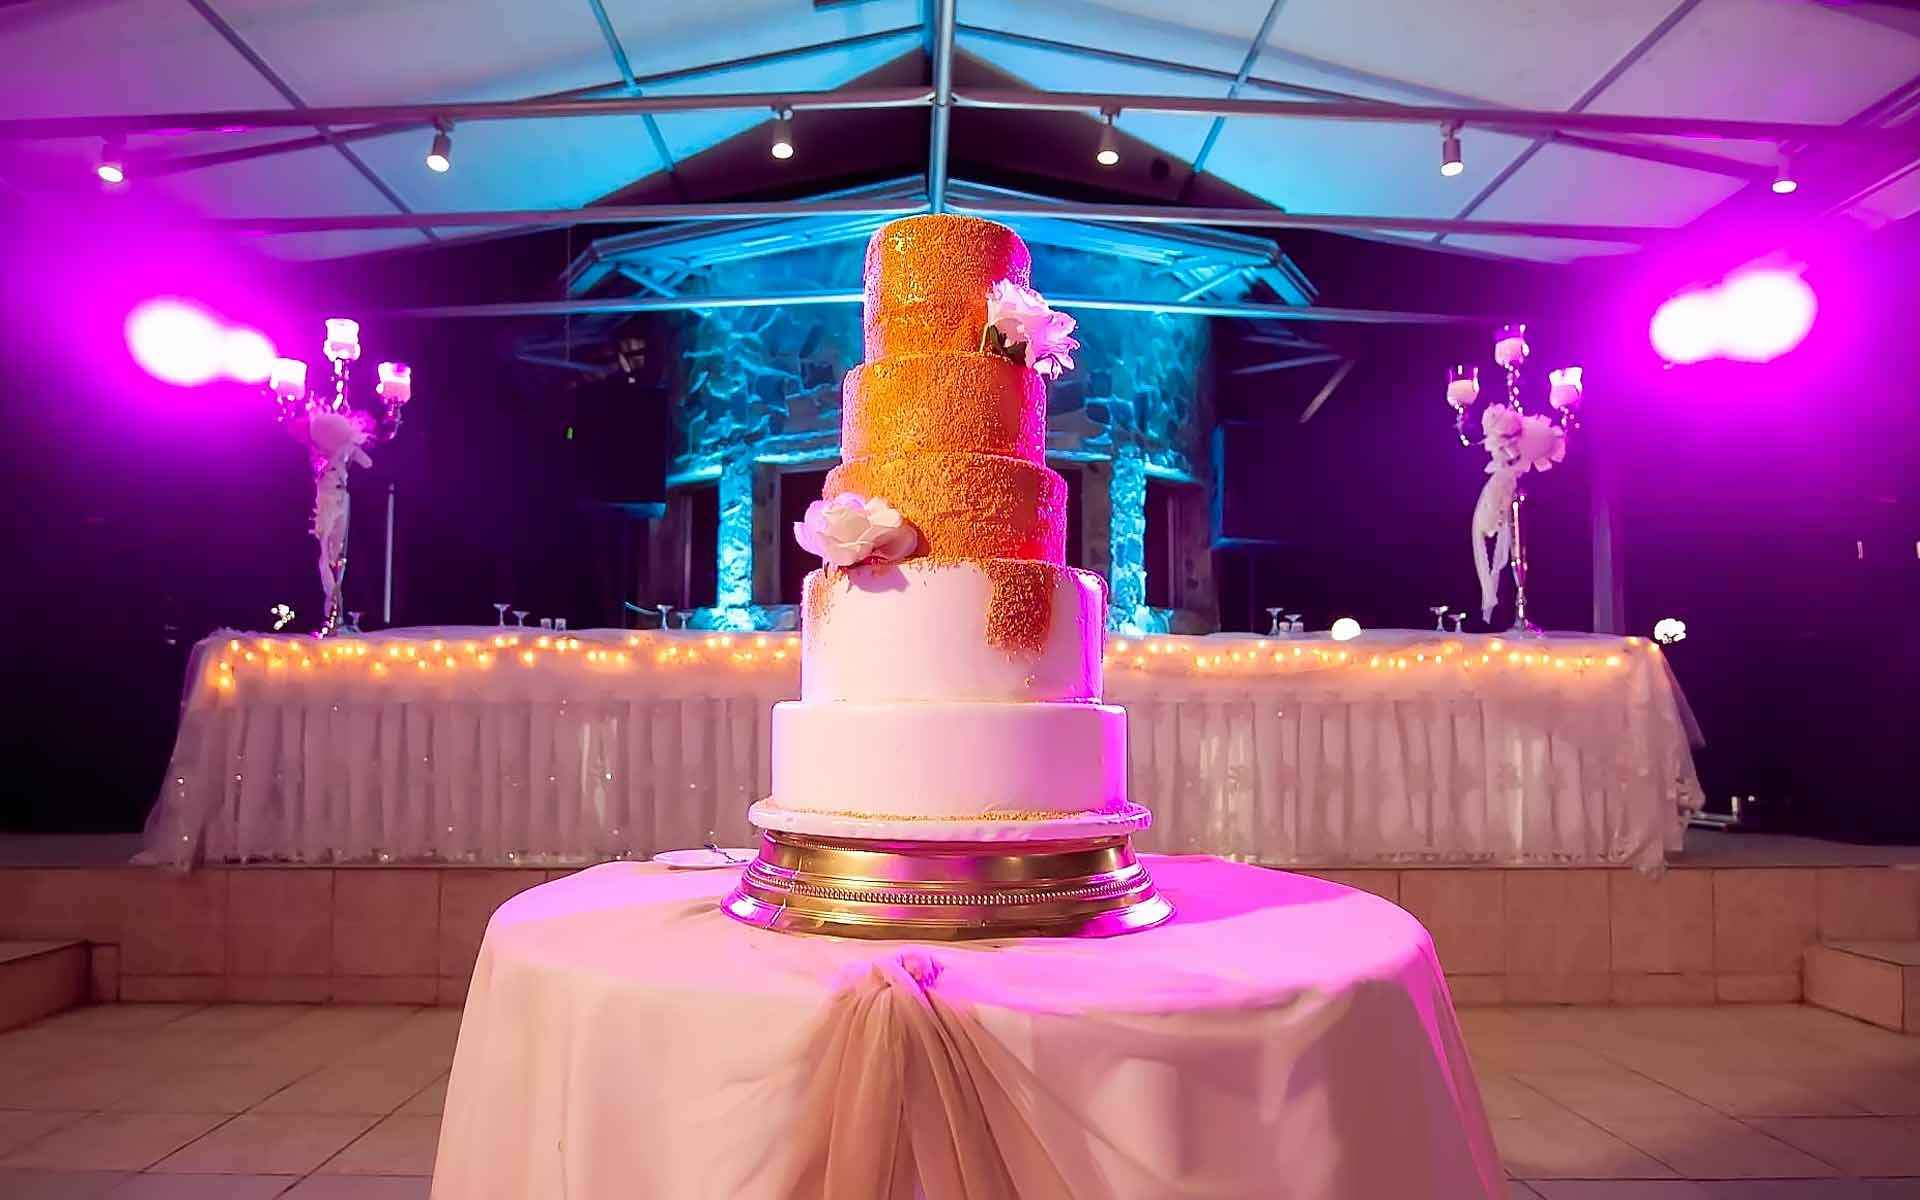 A-Glorious-Gold-Wedding-Cake-For-Your-Special-Day-by-Diamond-Events-Wedding-Event-planning-services